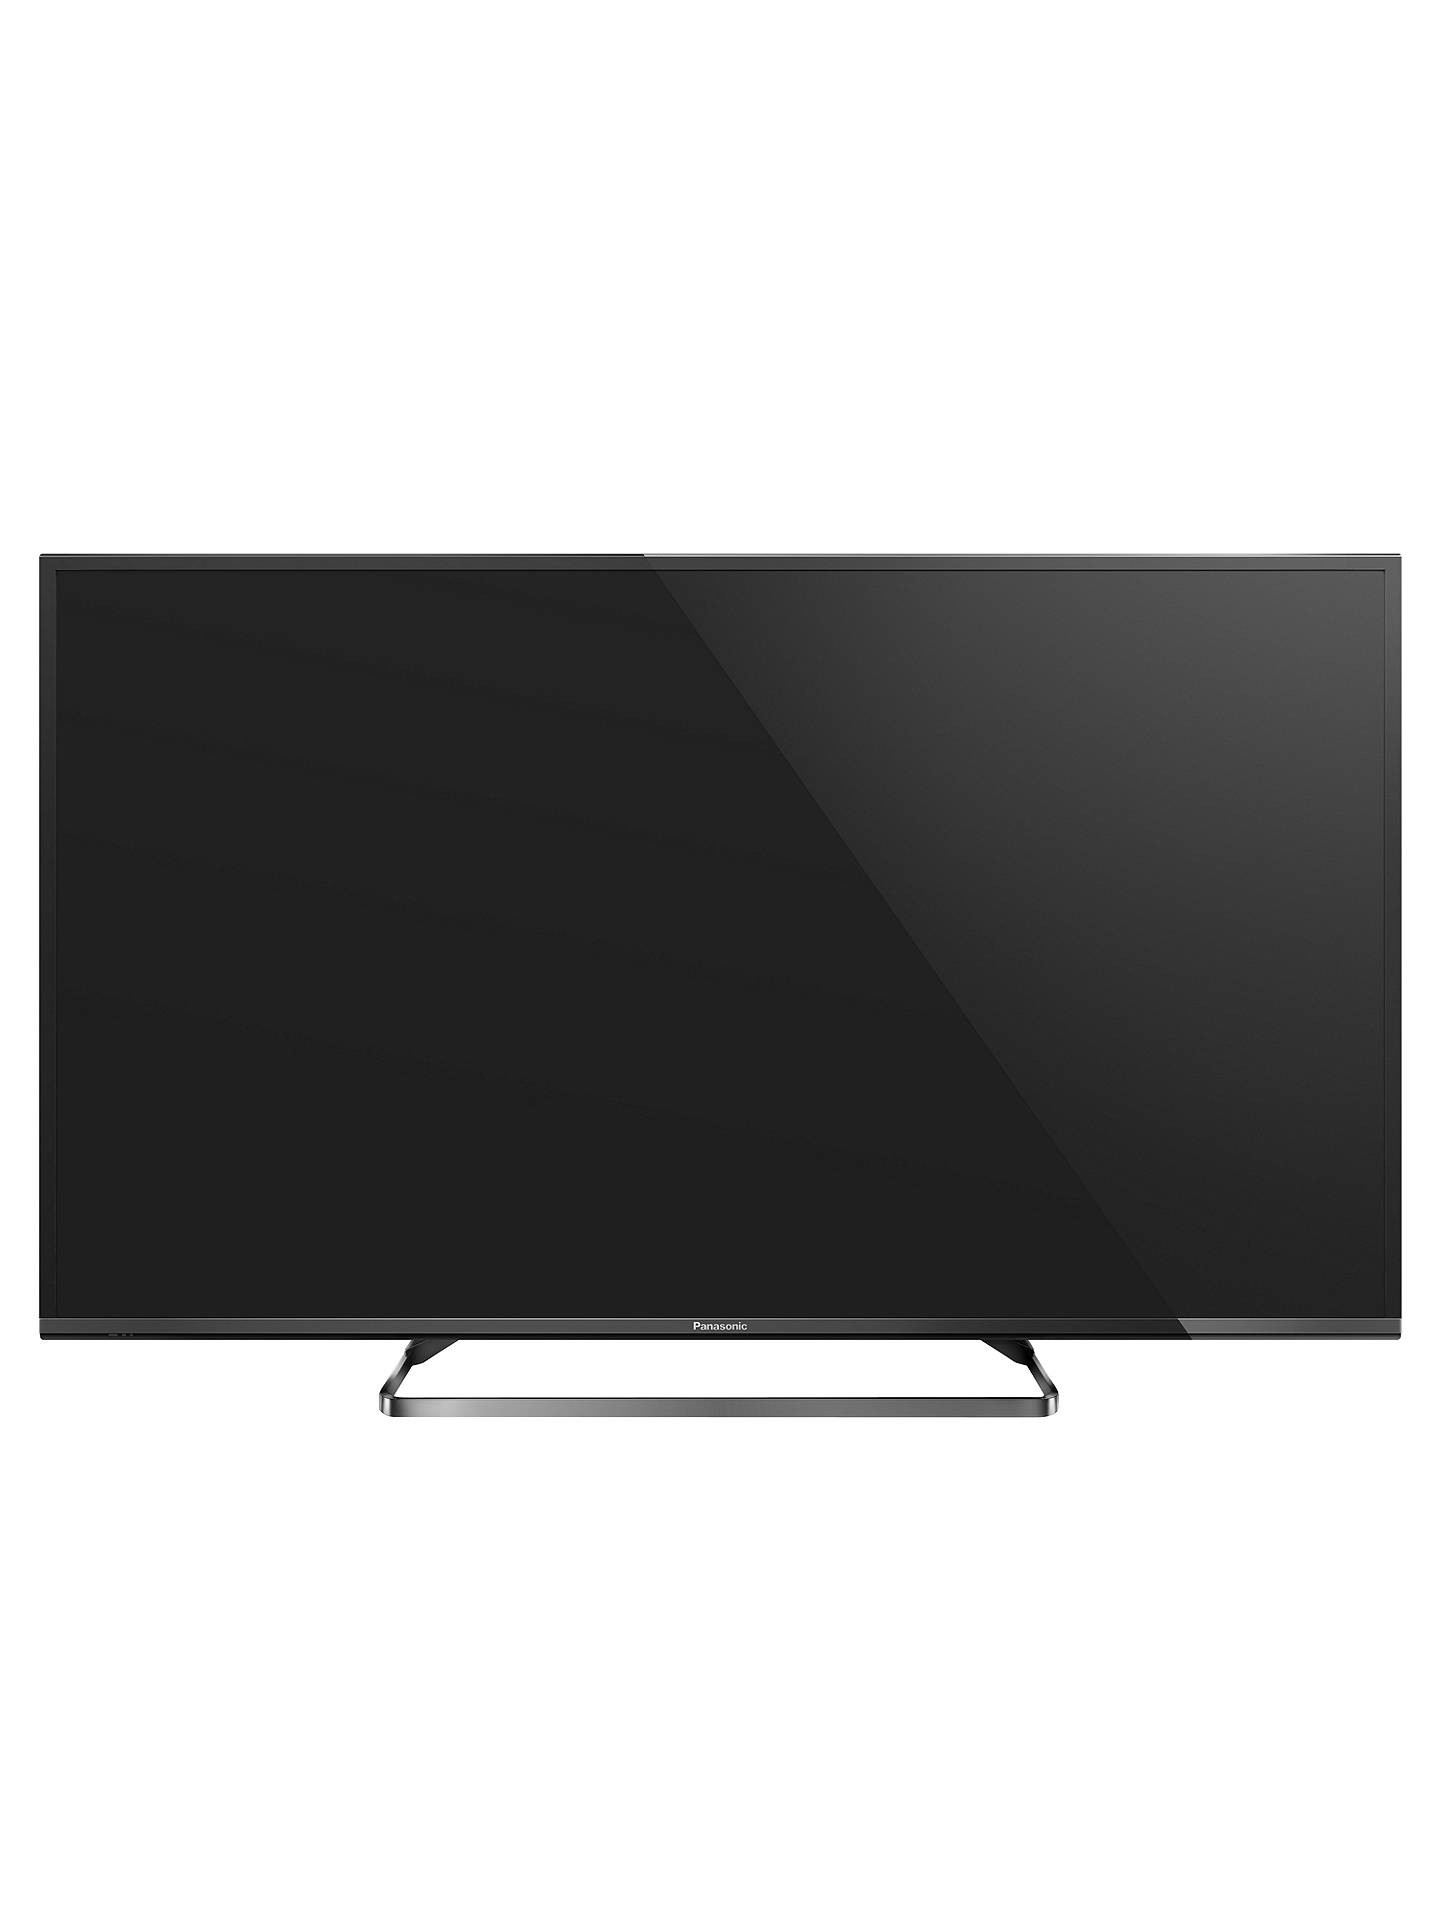 Panasonic Viera TX-50CX680B TV Treiber Windows 10